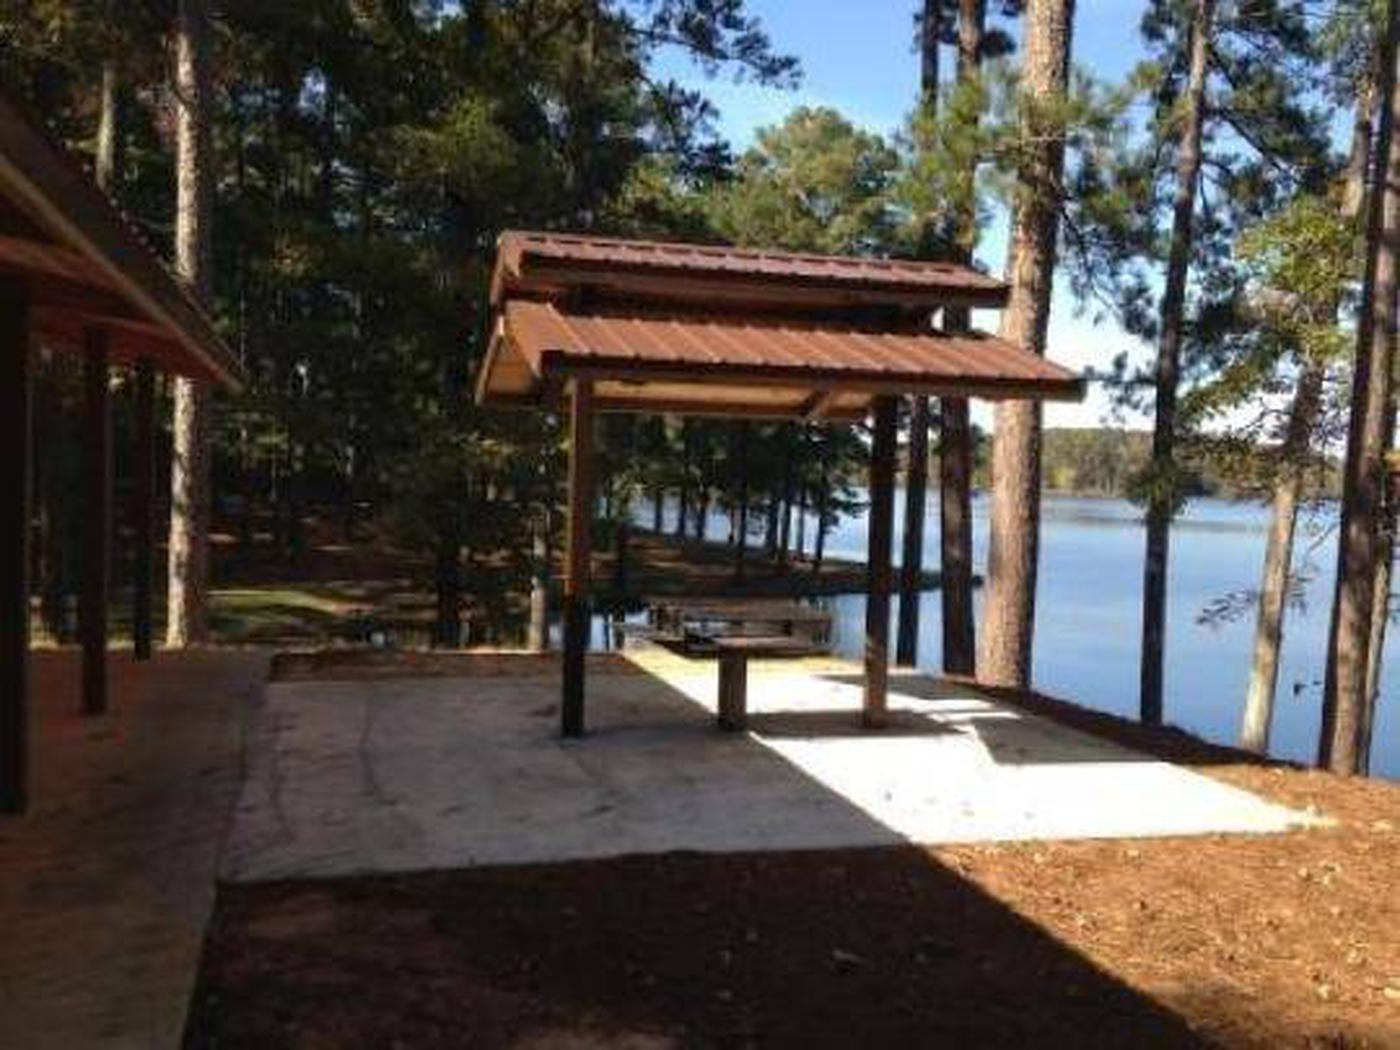 Choctaw Lake Recreation Area Shelter 3